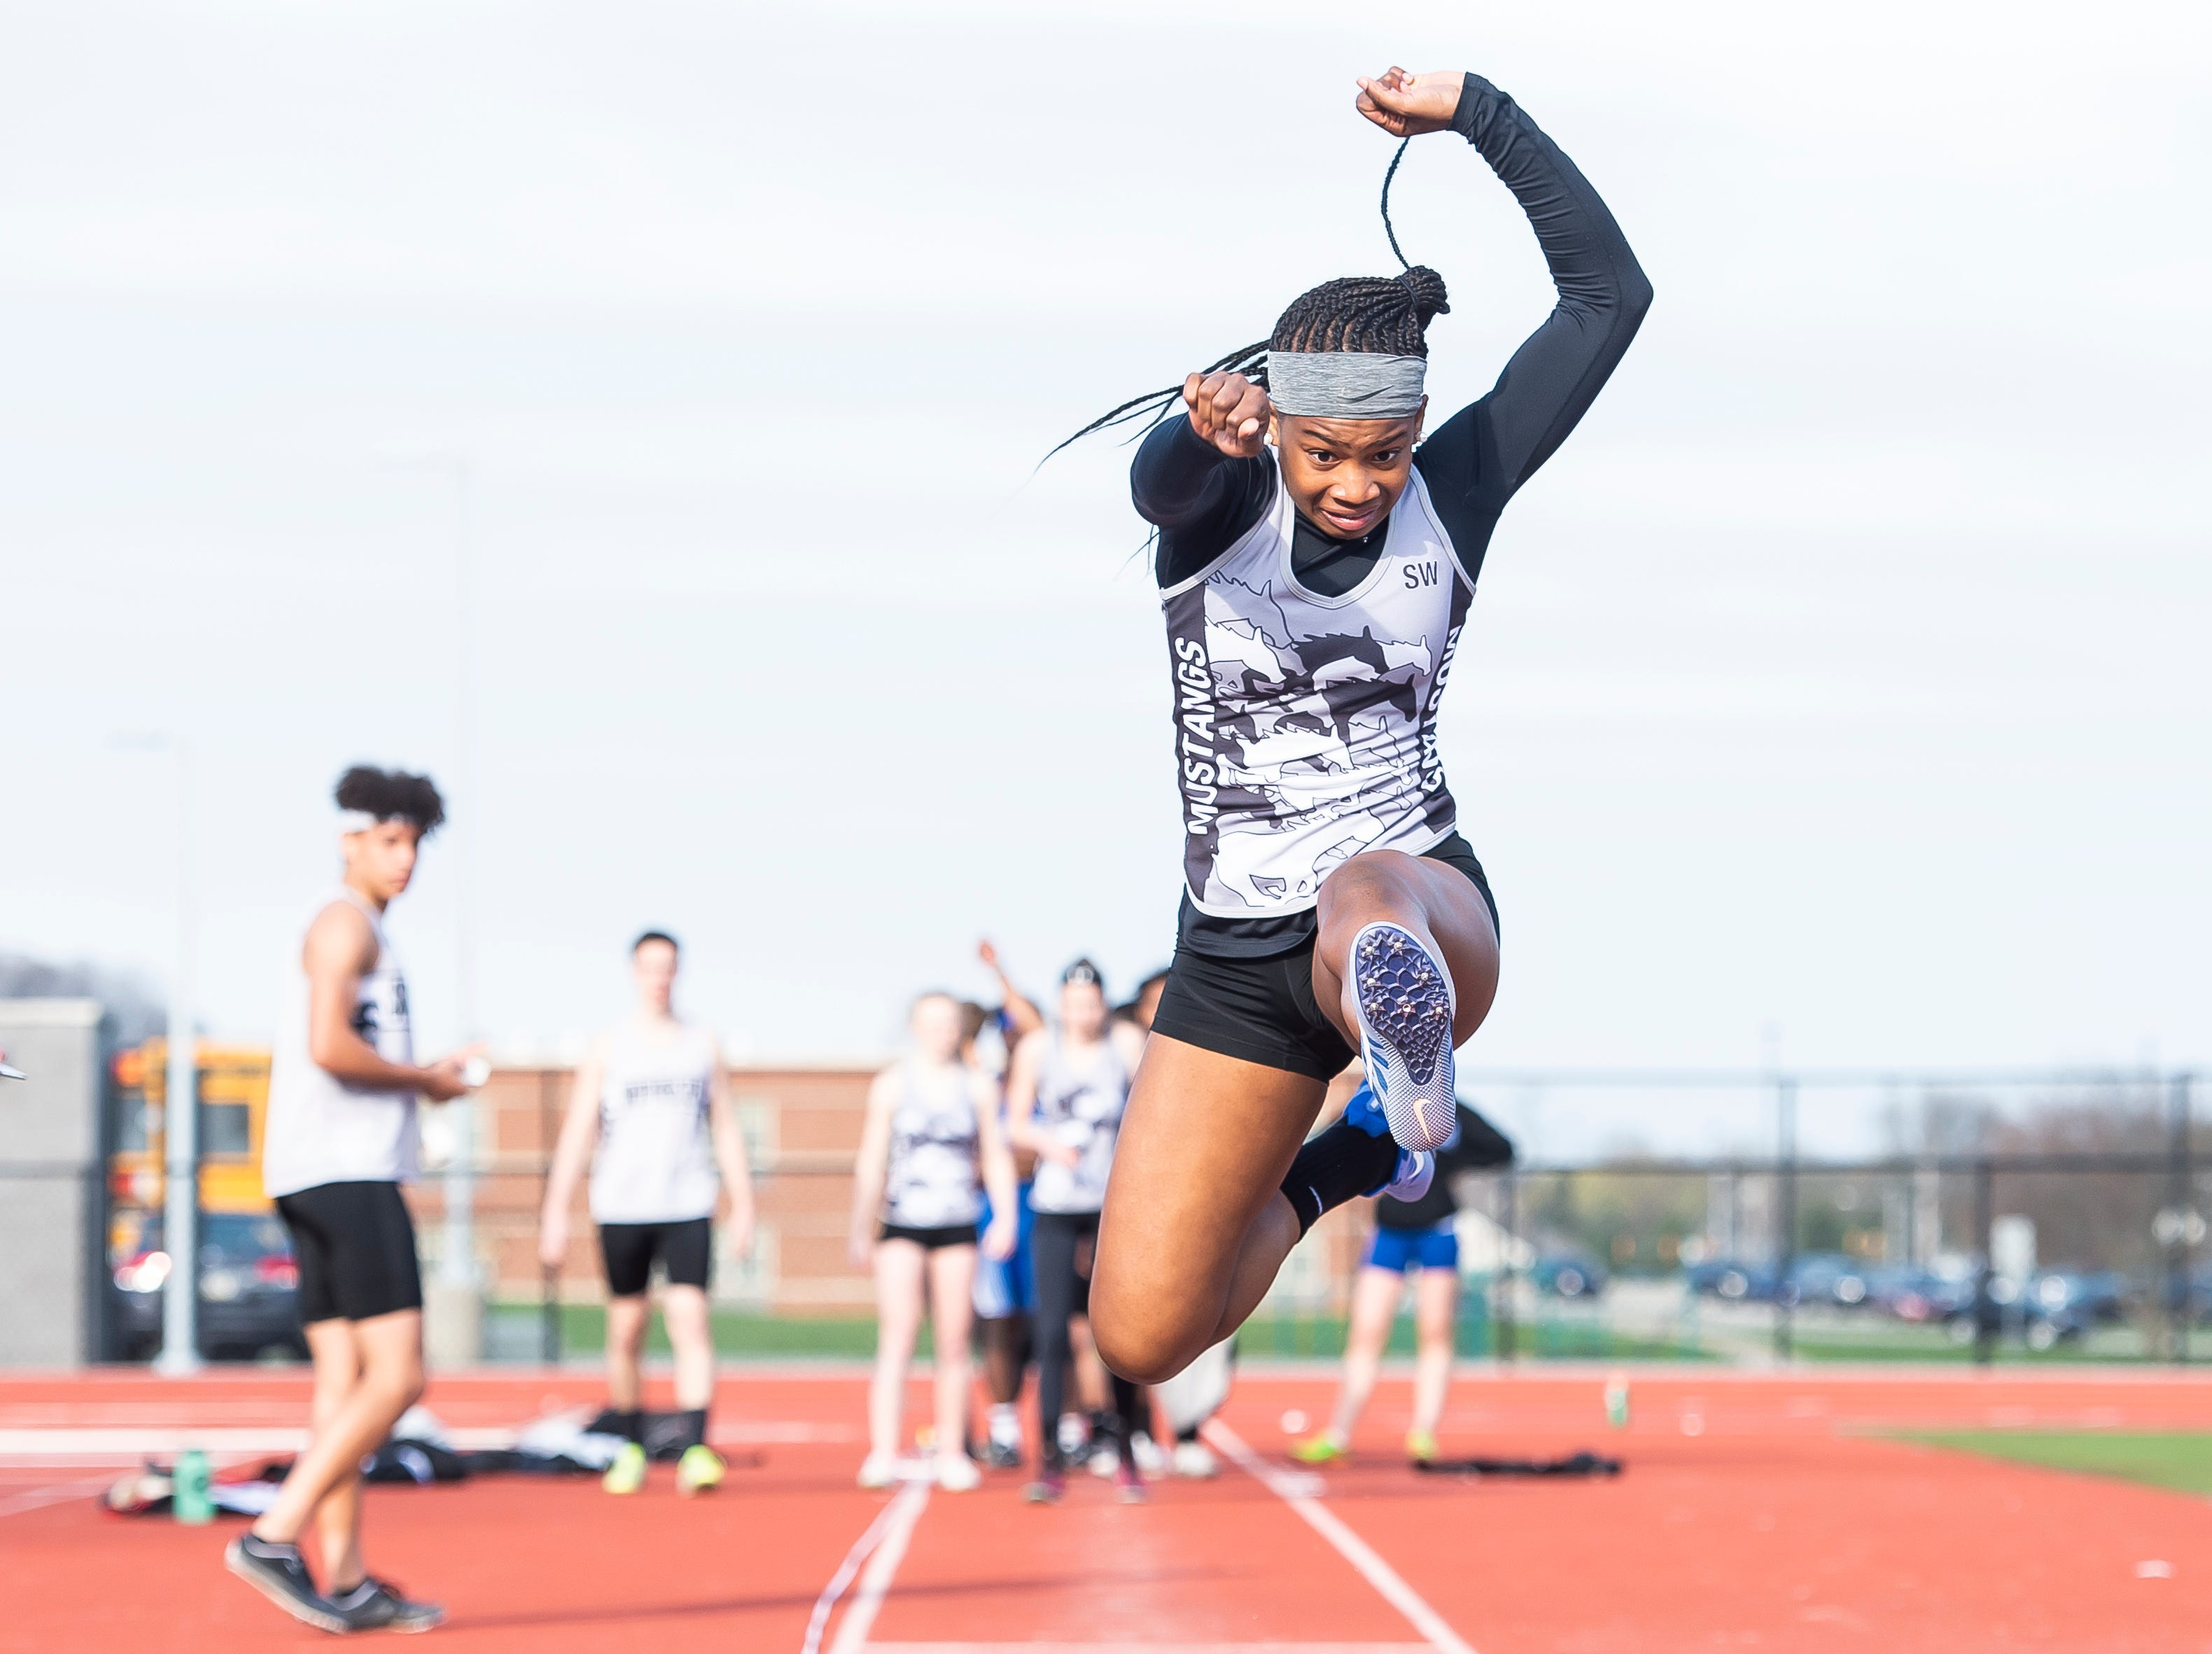 South Western's Zaiyah Marshall competes in the triple jump during a track and field meet against Spring Grove on Thursday, April 11, 2019.